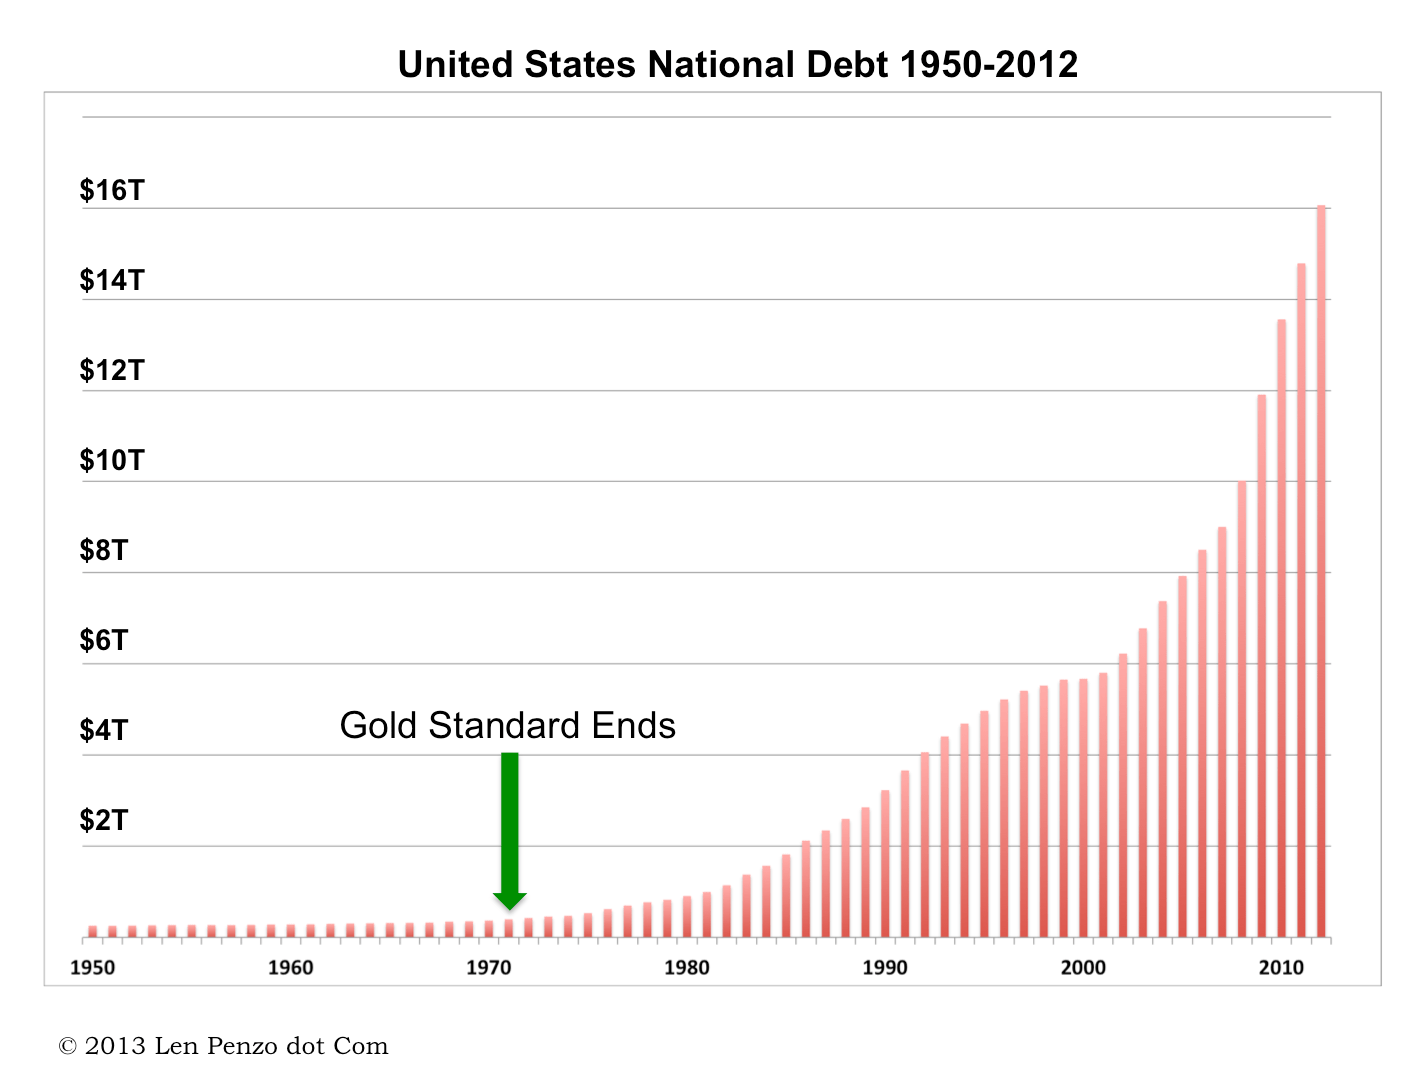 https://i2.wp.com/lenpenzo.com/blog/wp-content/uploads/2013/02/NationalDebt1.png